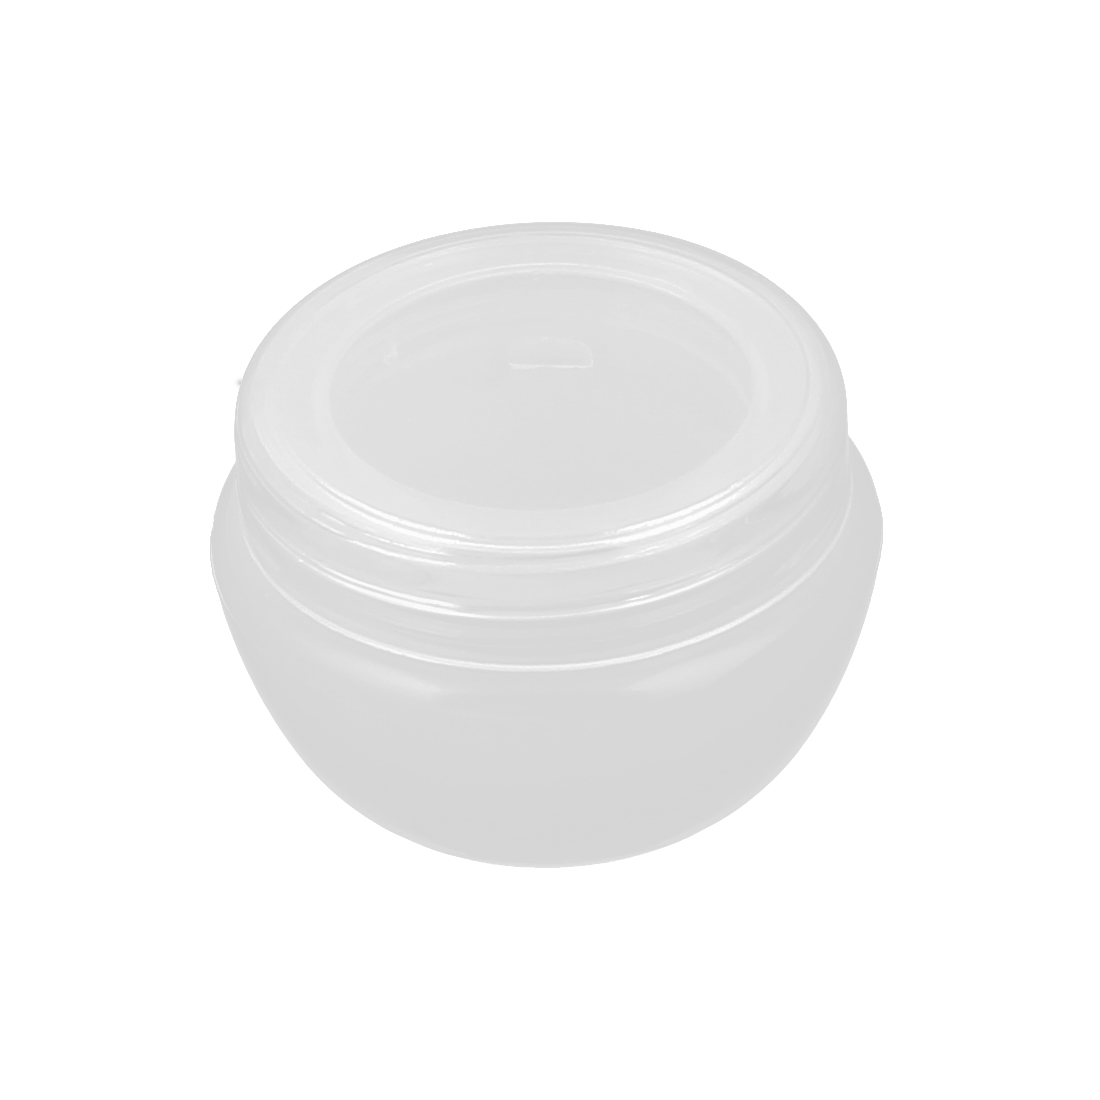 Plastic Makeup Cosmetic Empty Jar Pot Face Cream Eyeshadow Bottle Container Holder 10g Clear